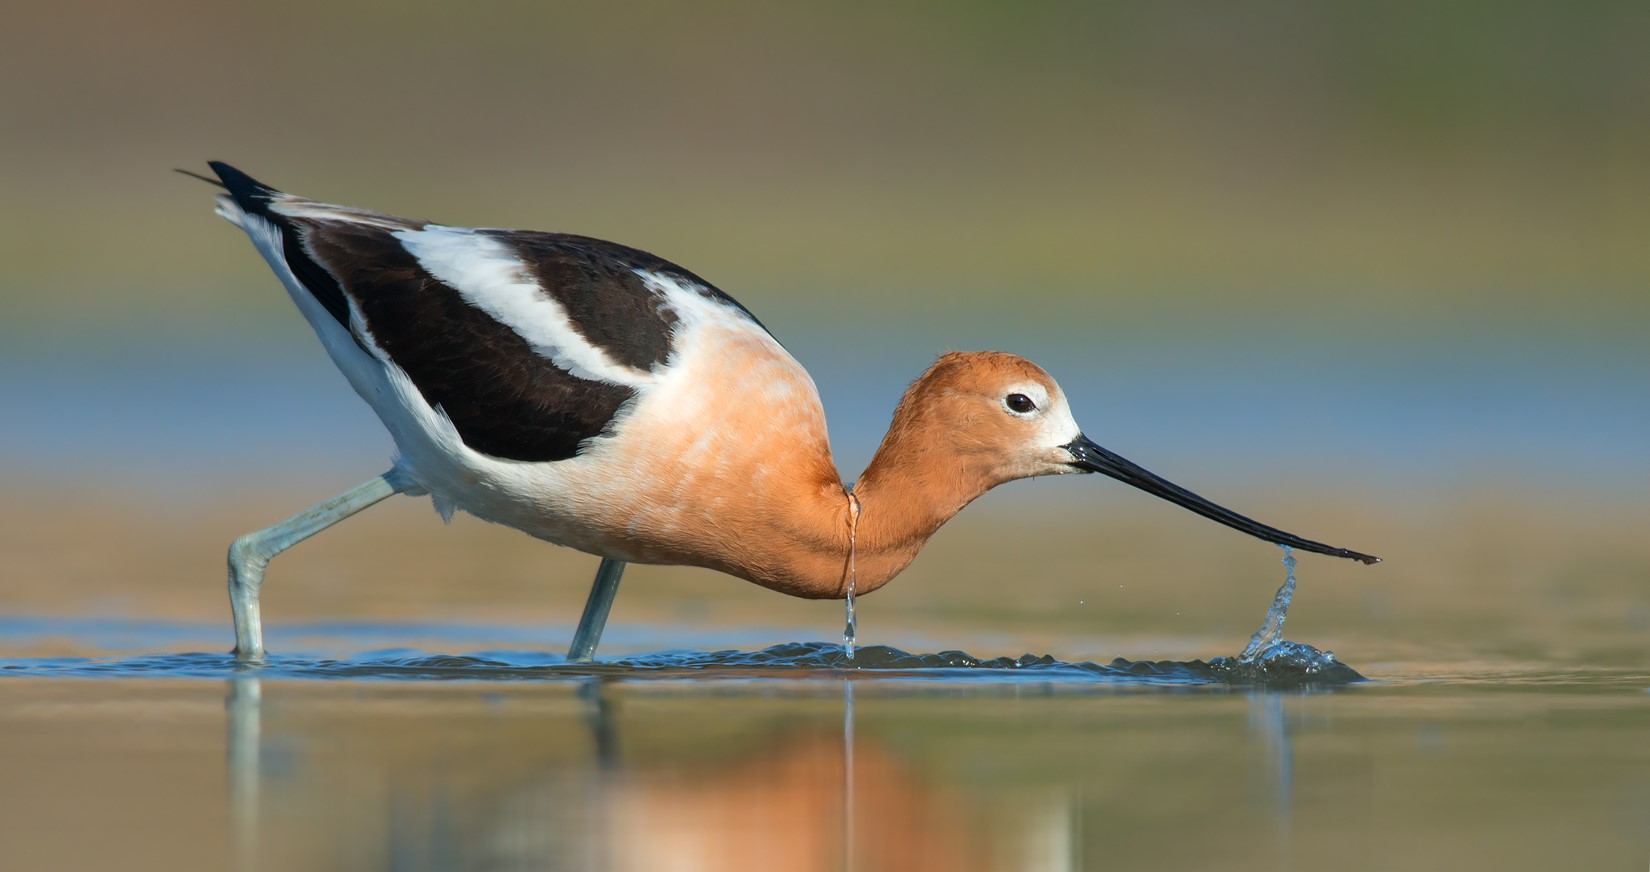 An American Avocet wades in some shallow water, dipping its head down.